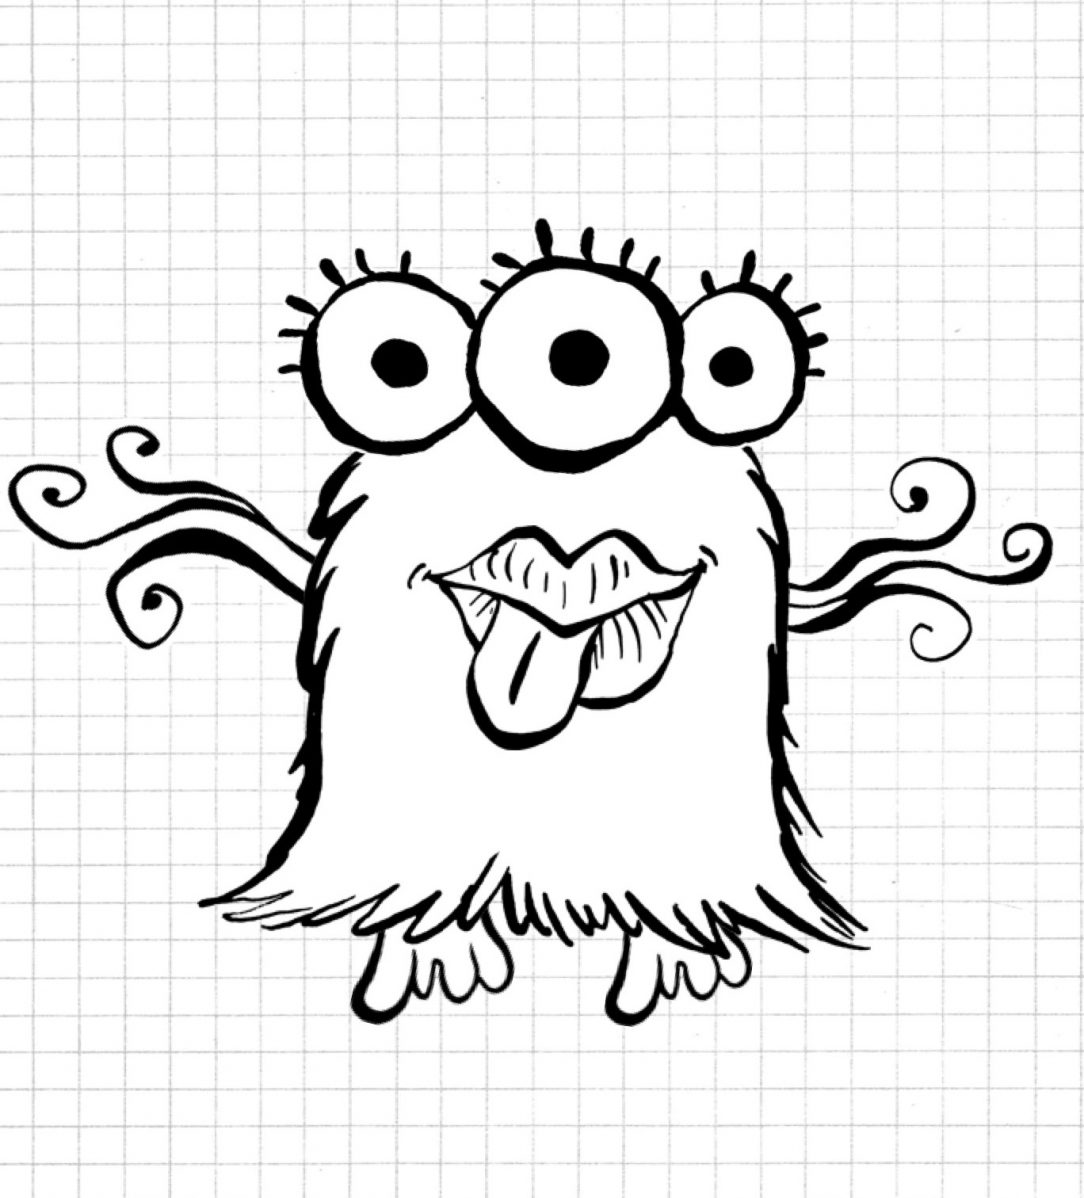 It is a picture of Ridiculous Scary Mouth Drawing